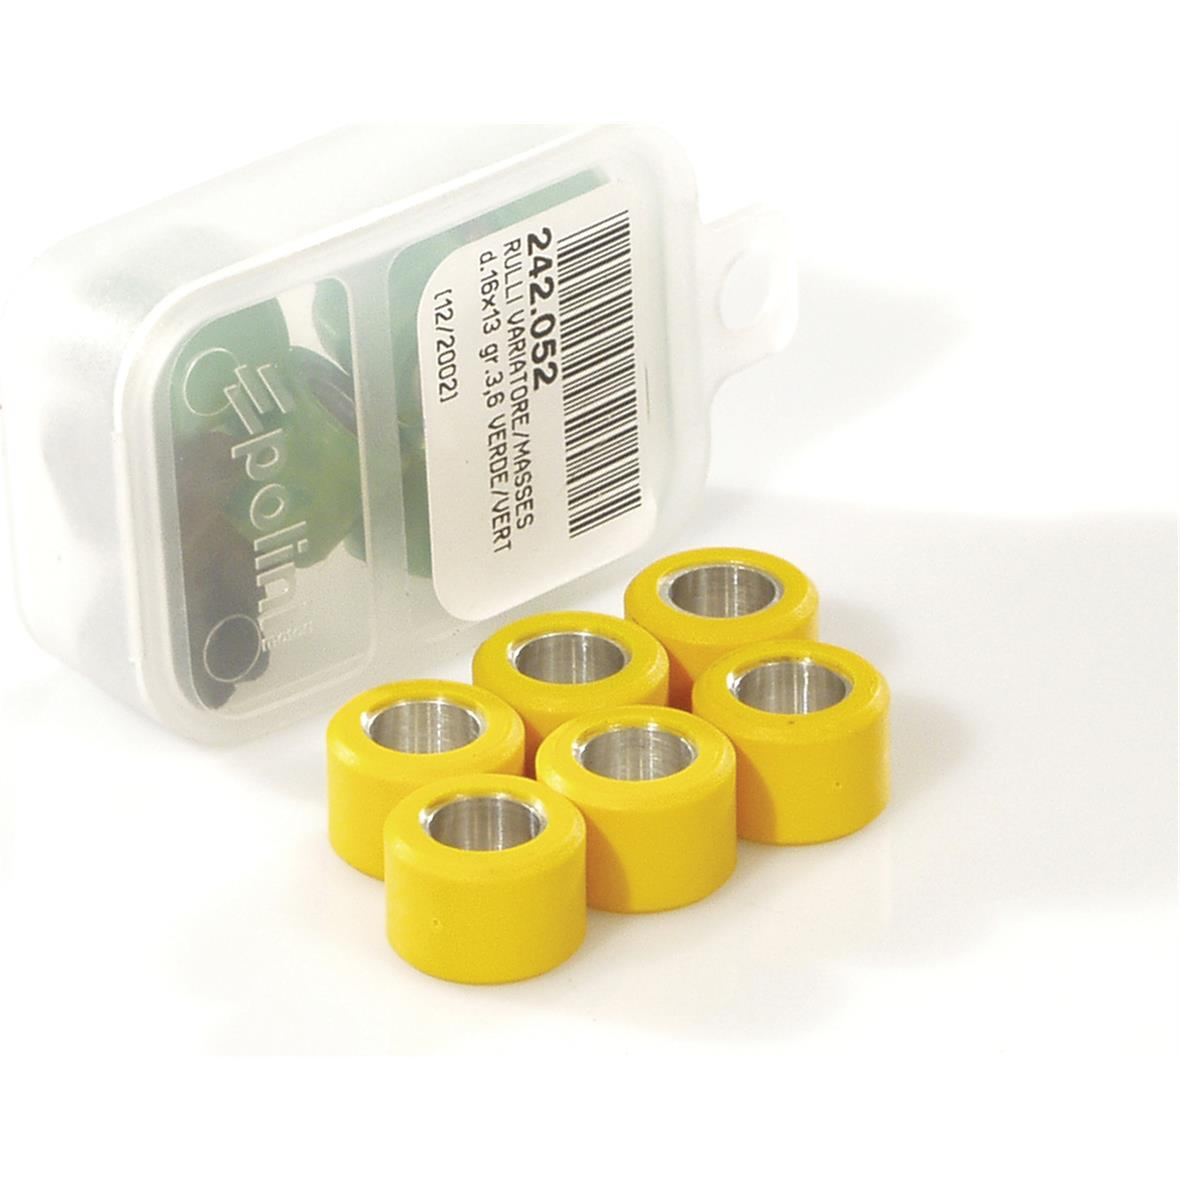 Product Image for 'Variator Rollers POLINI 17x12 mm 9,2gTitle'